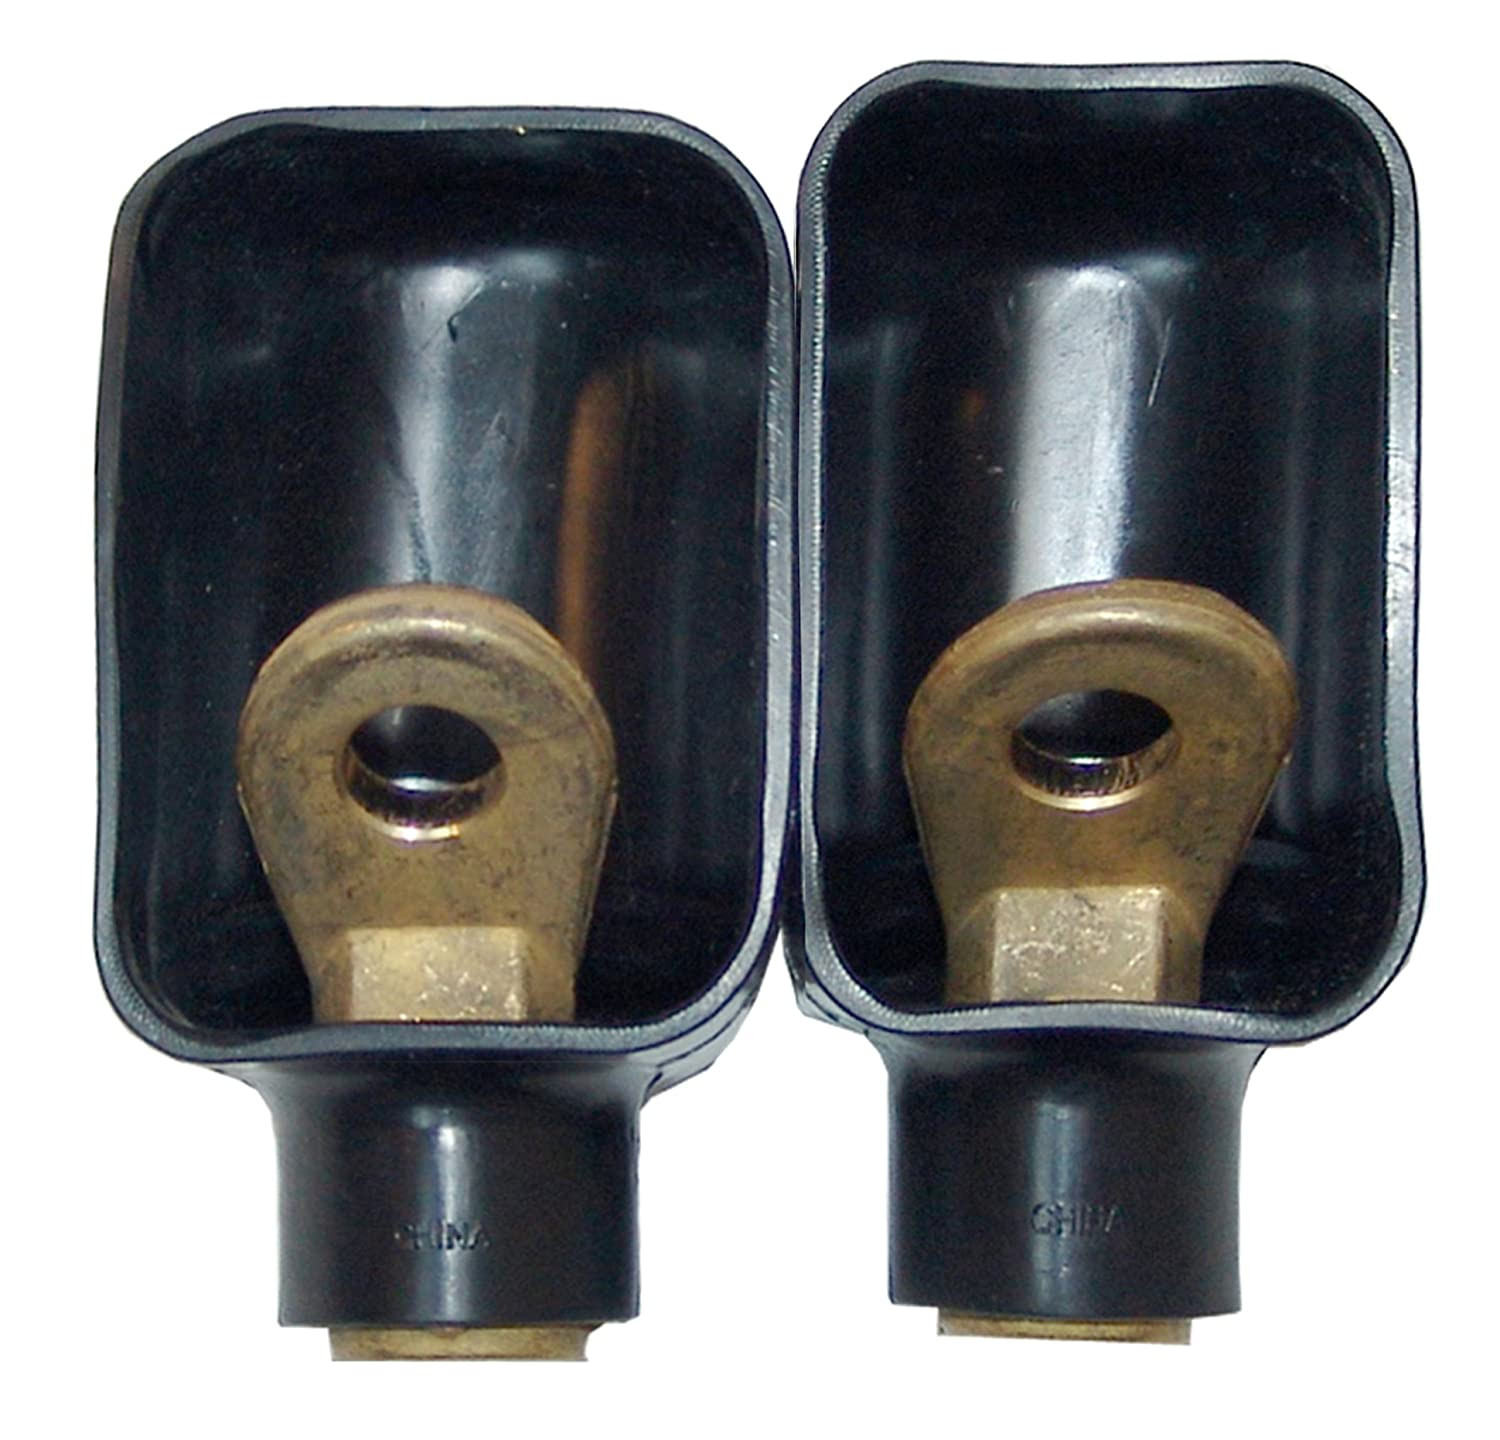 Pair of Jackson Safety Welding Terminal Covers